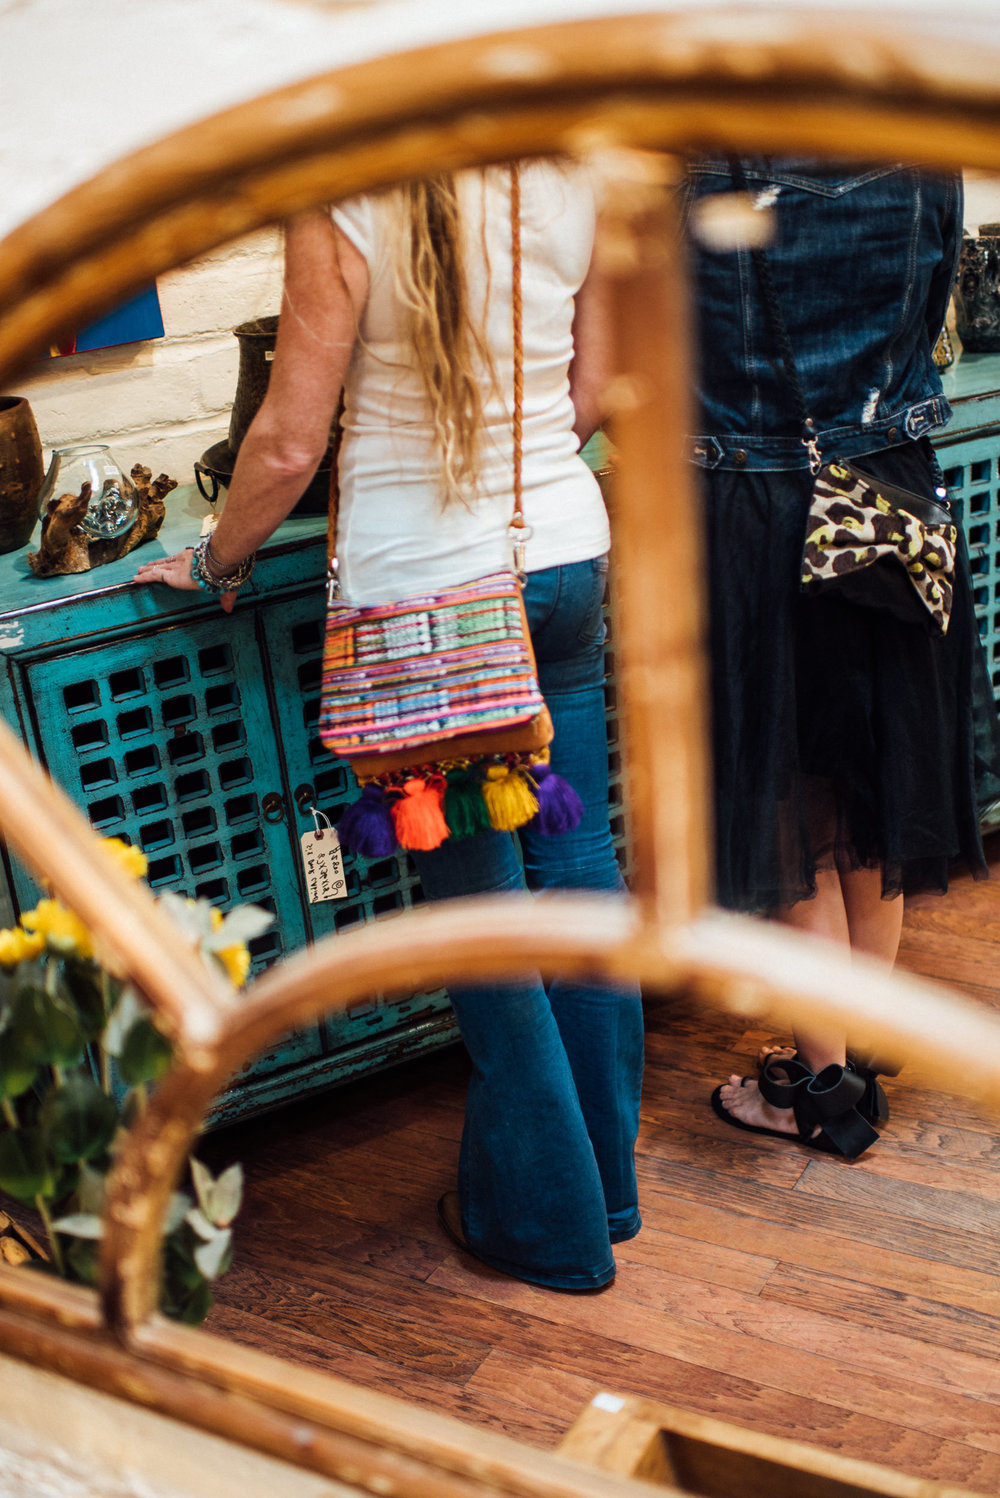 Arizona-Boho-Wedding-Photographer-Handbags-21.jpg